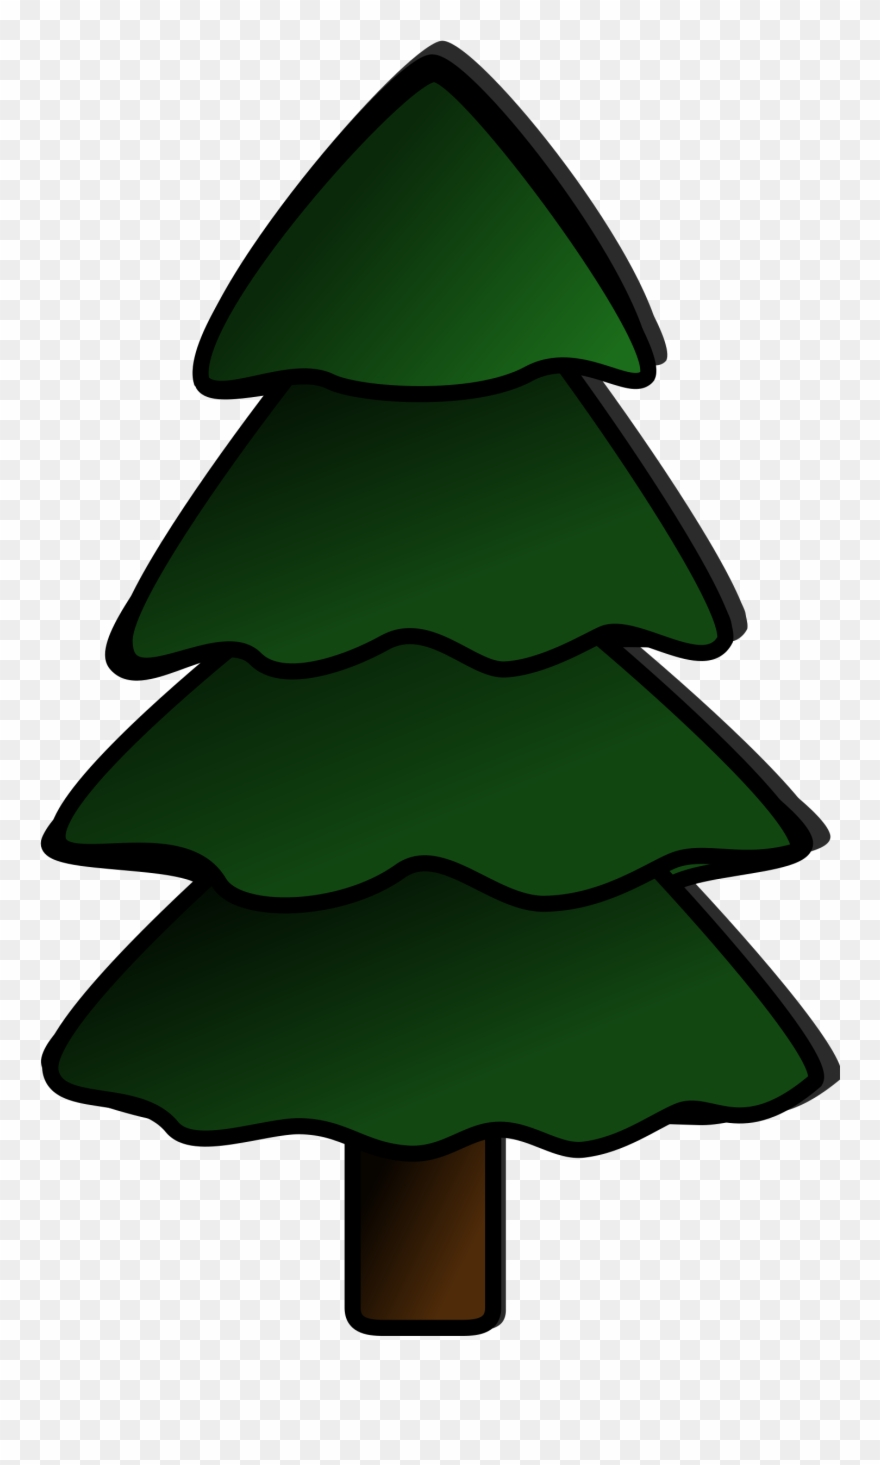 Tree Svg Vector File, Vector Clip Art Svg File.